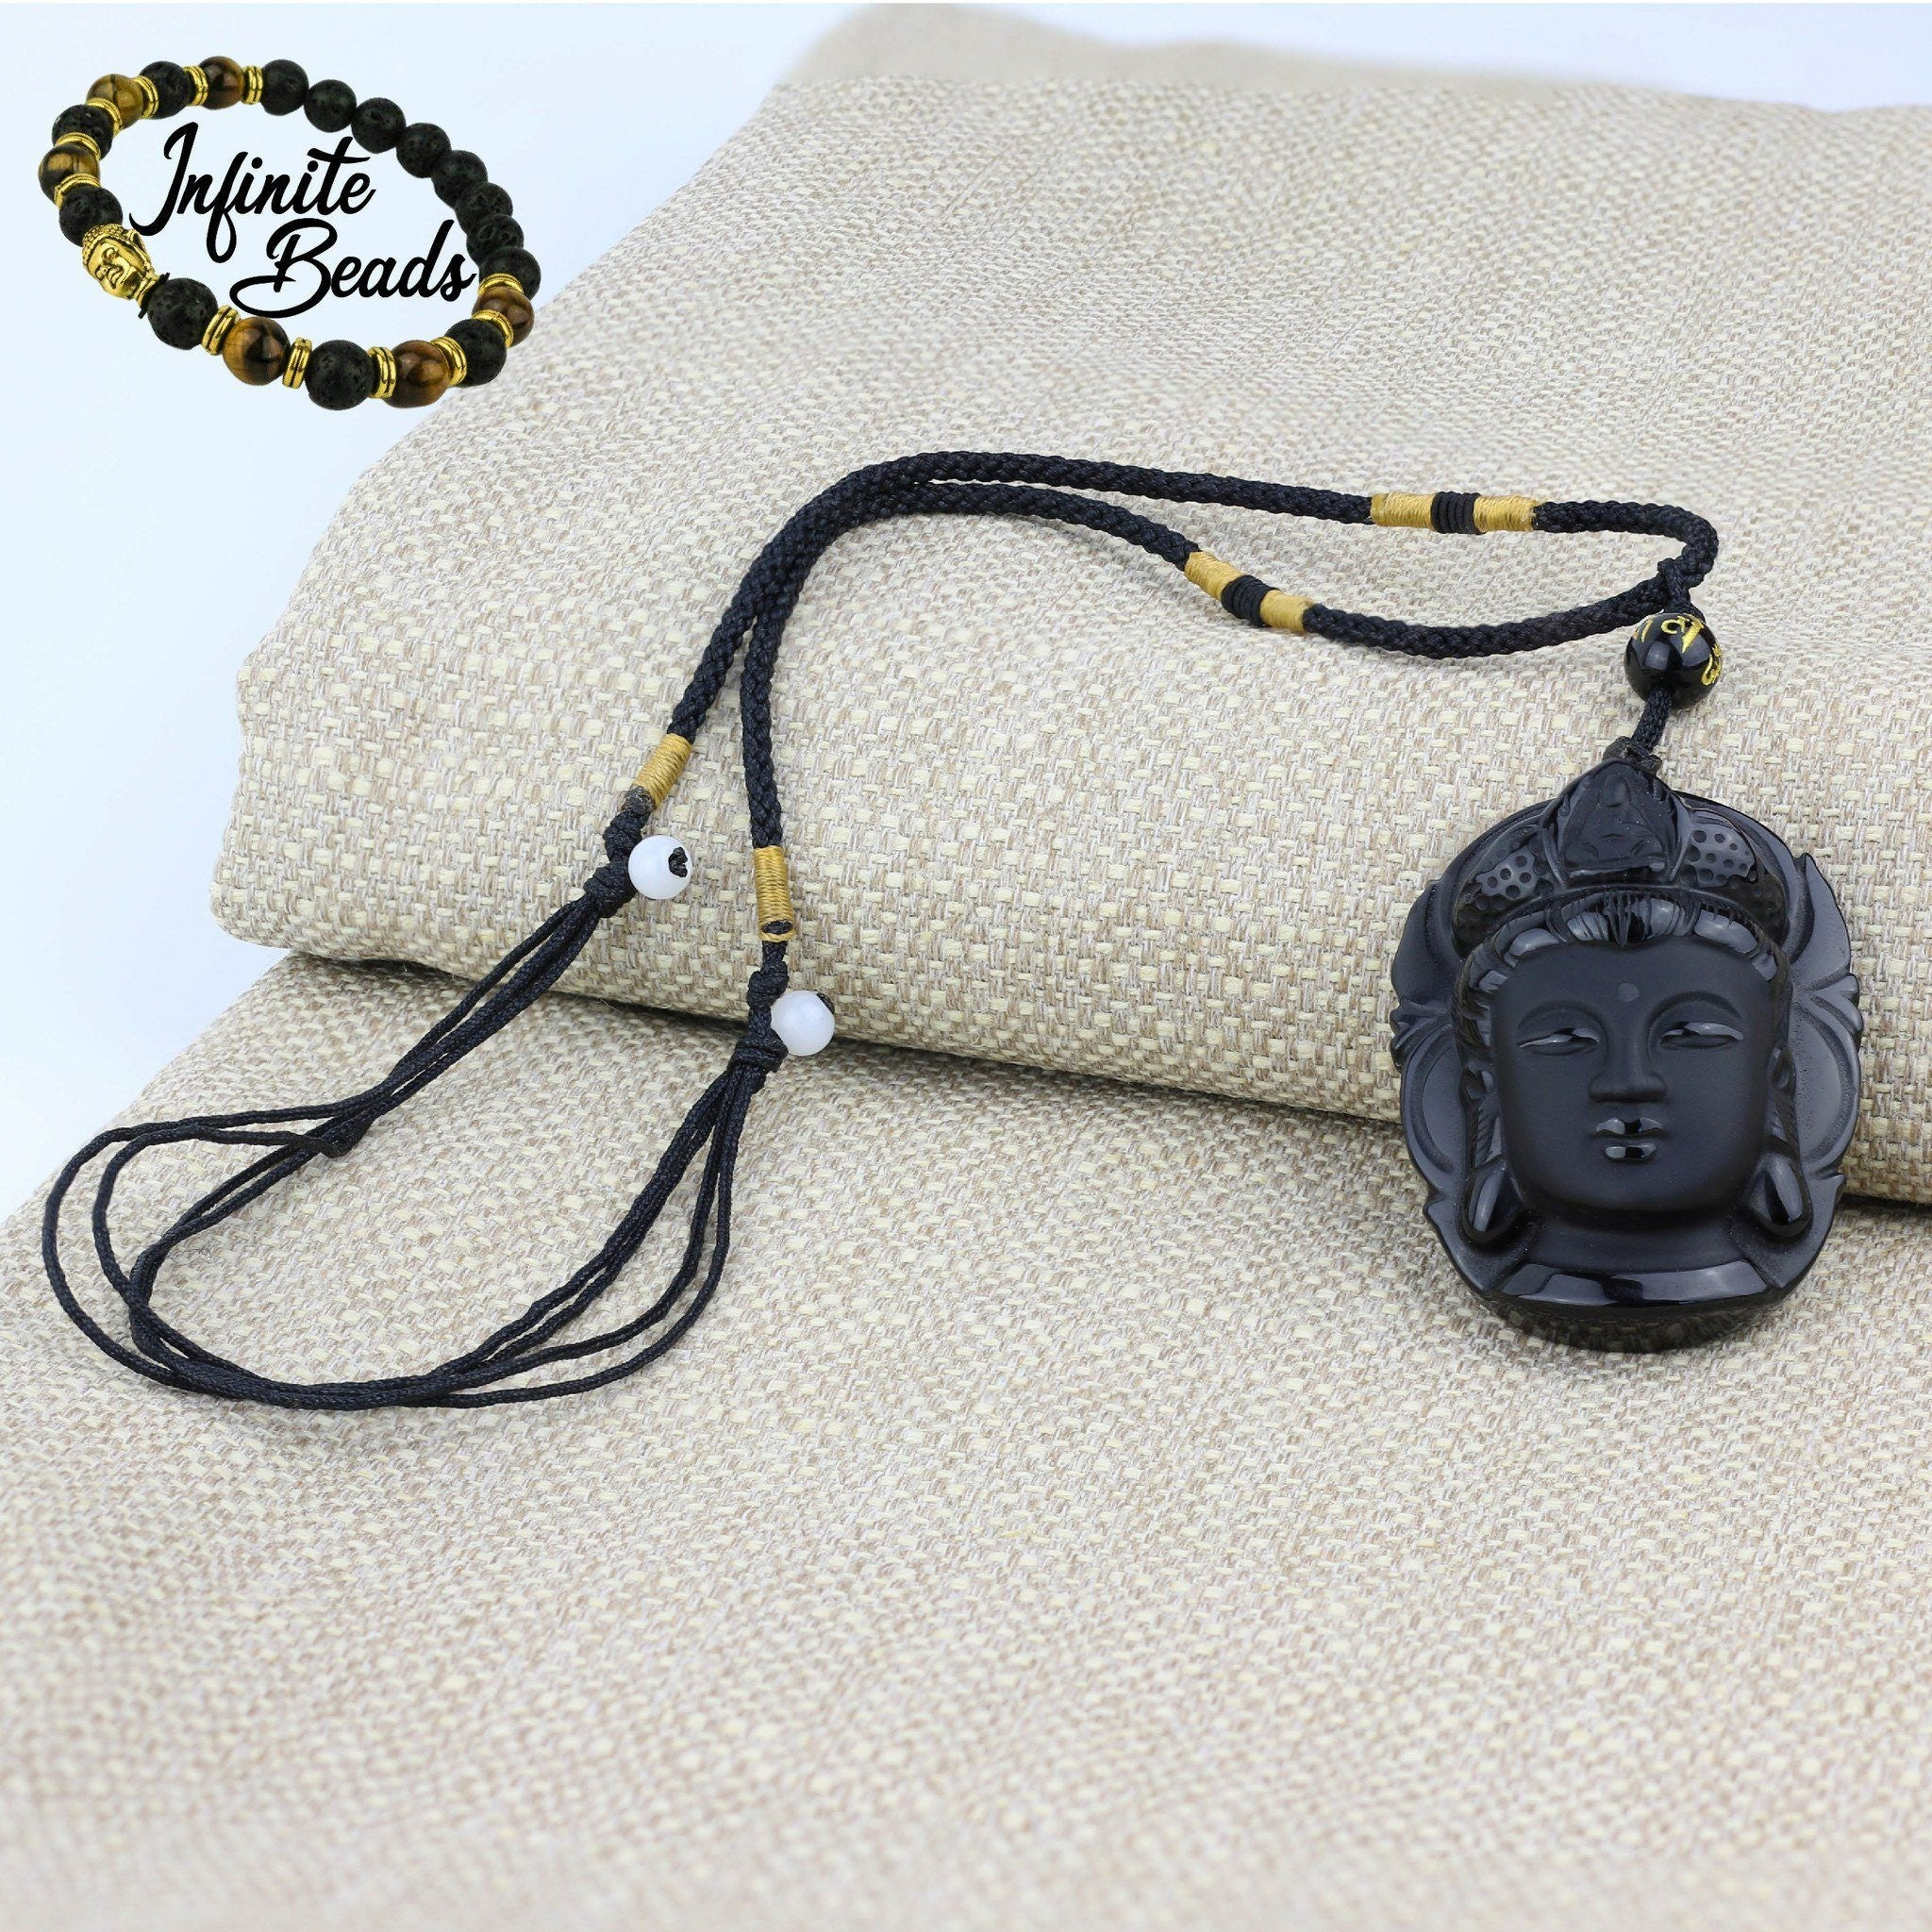 Beads - Obsidian Natural Volcanic Lava Kuan Yin Buddha Head Necklace